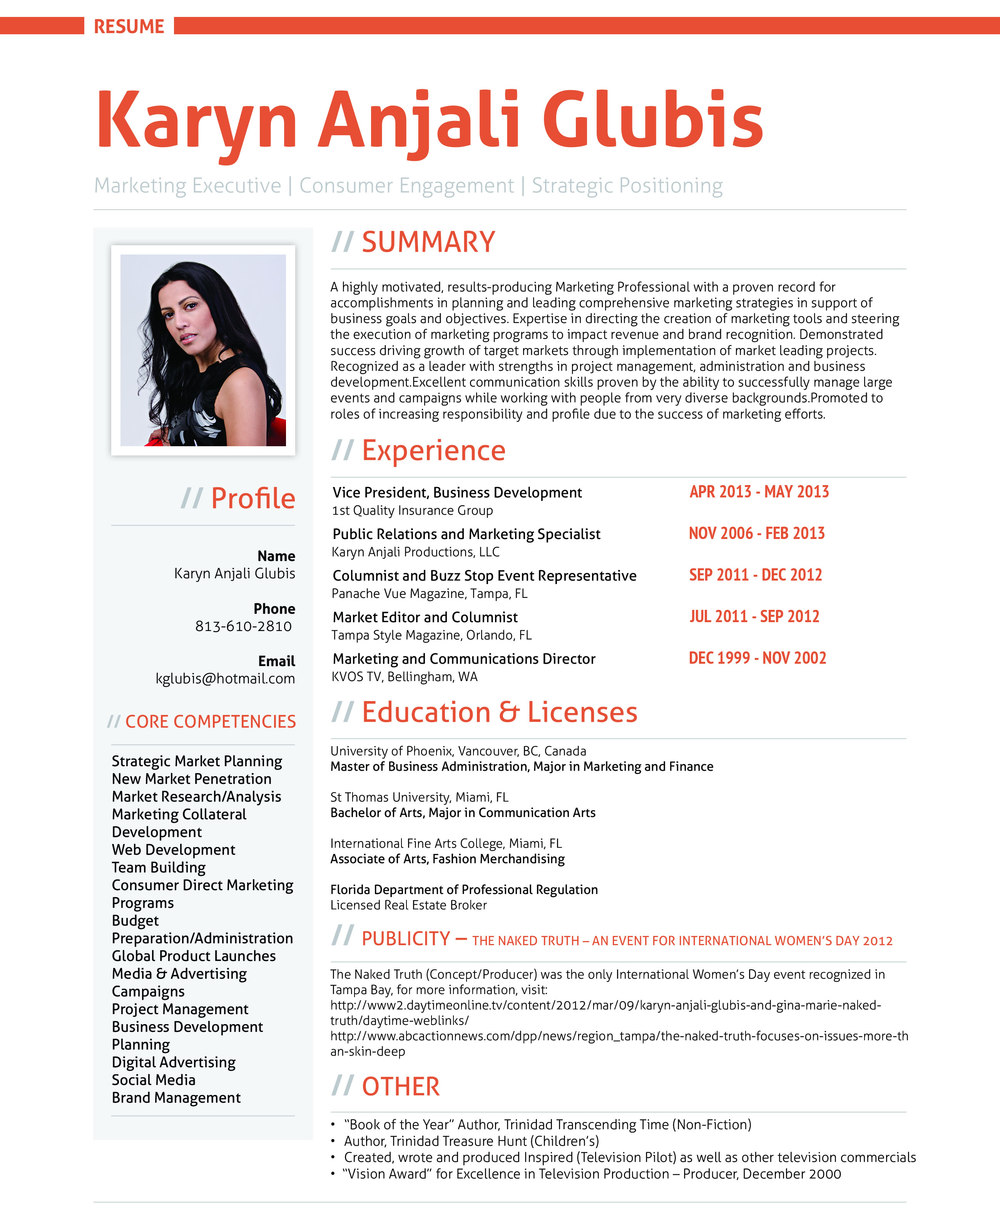 resumes with photo